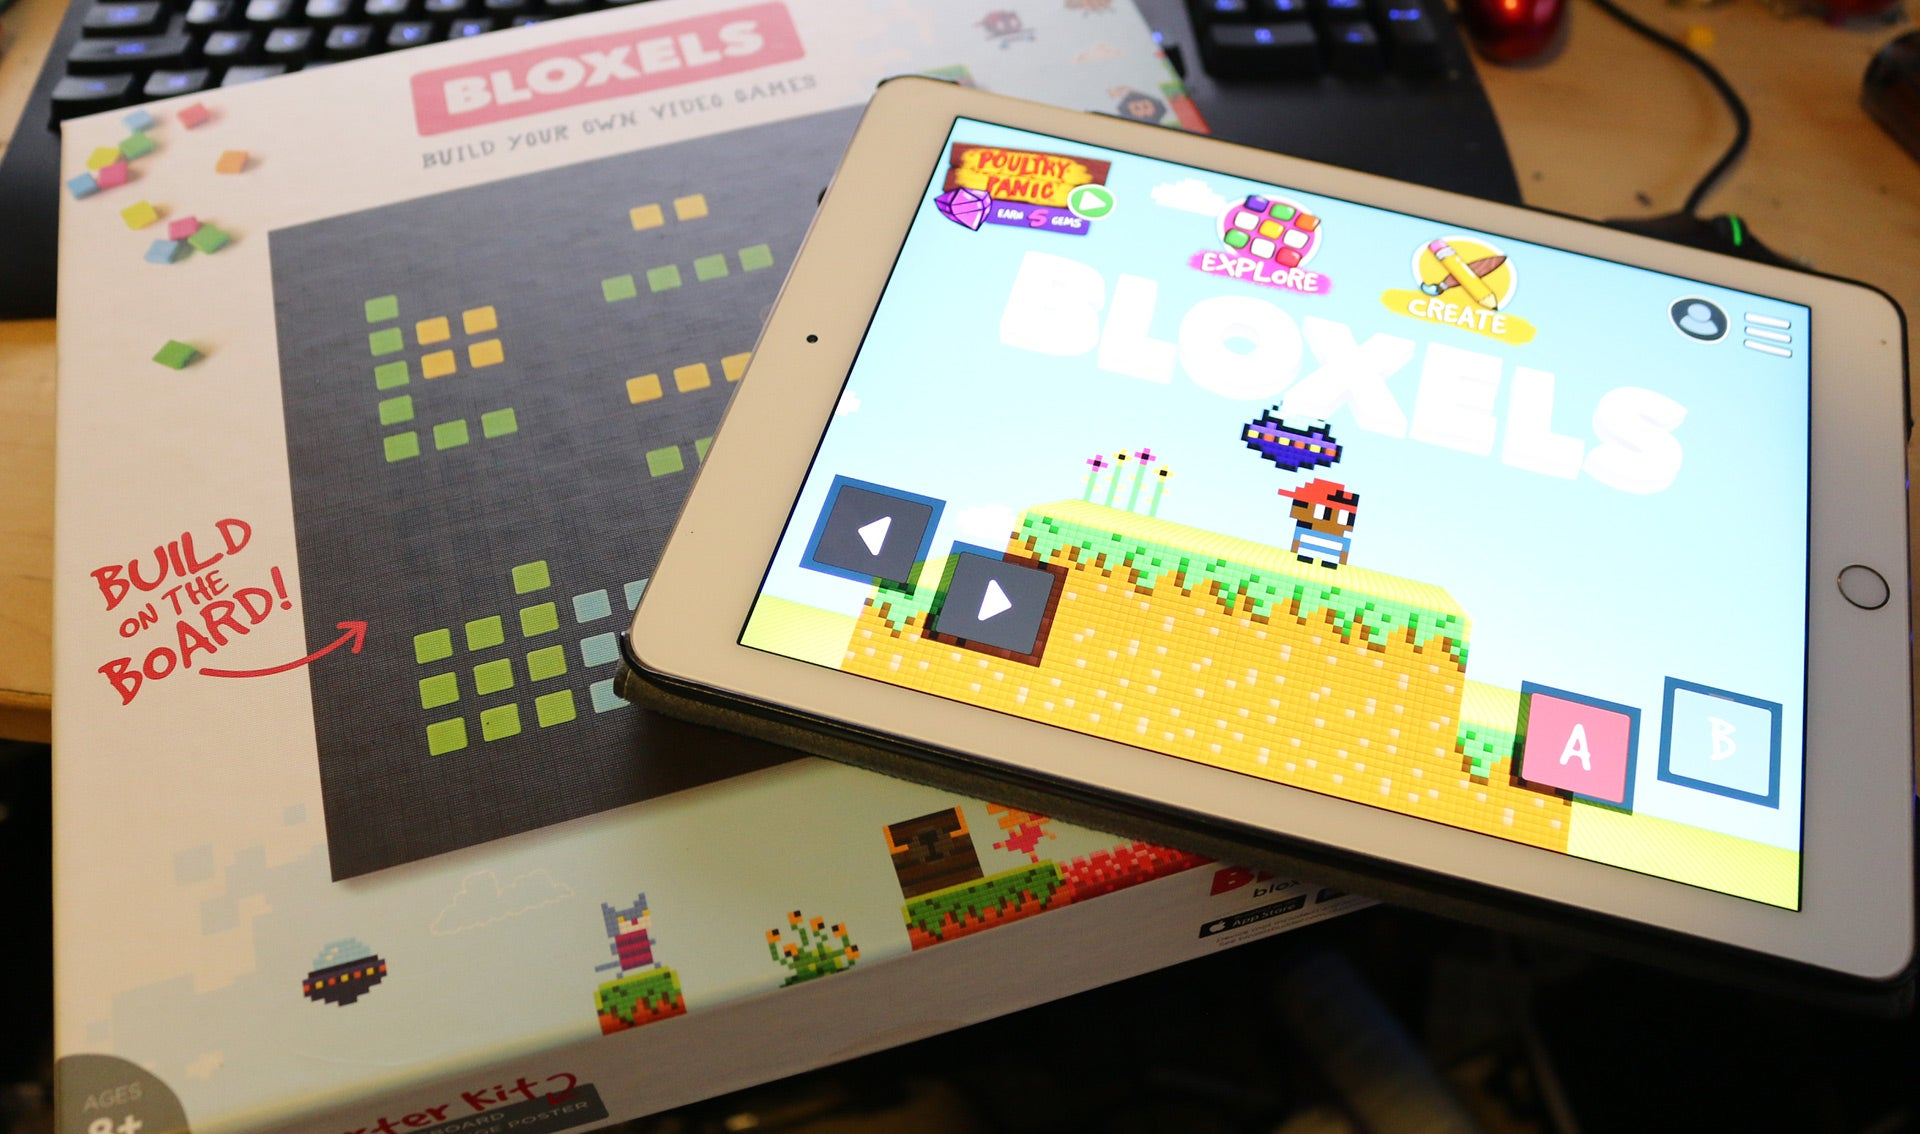 Bloxels Lets You Make Video Games With Colourful Plastic Cubes